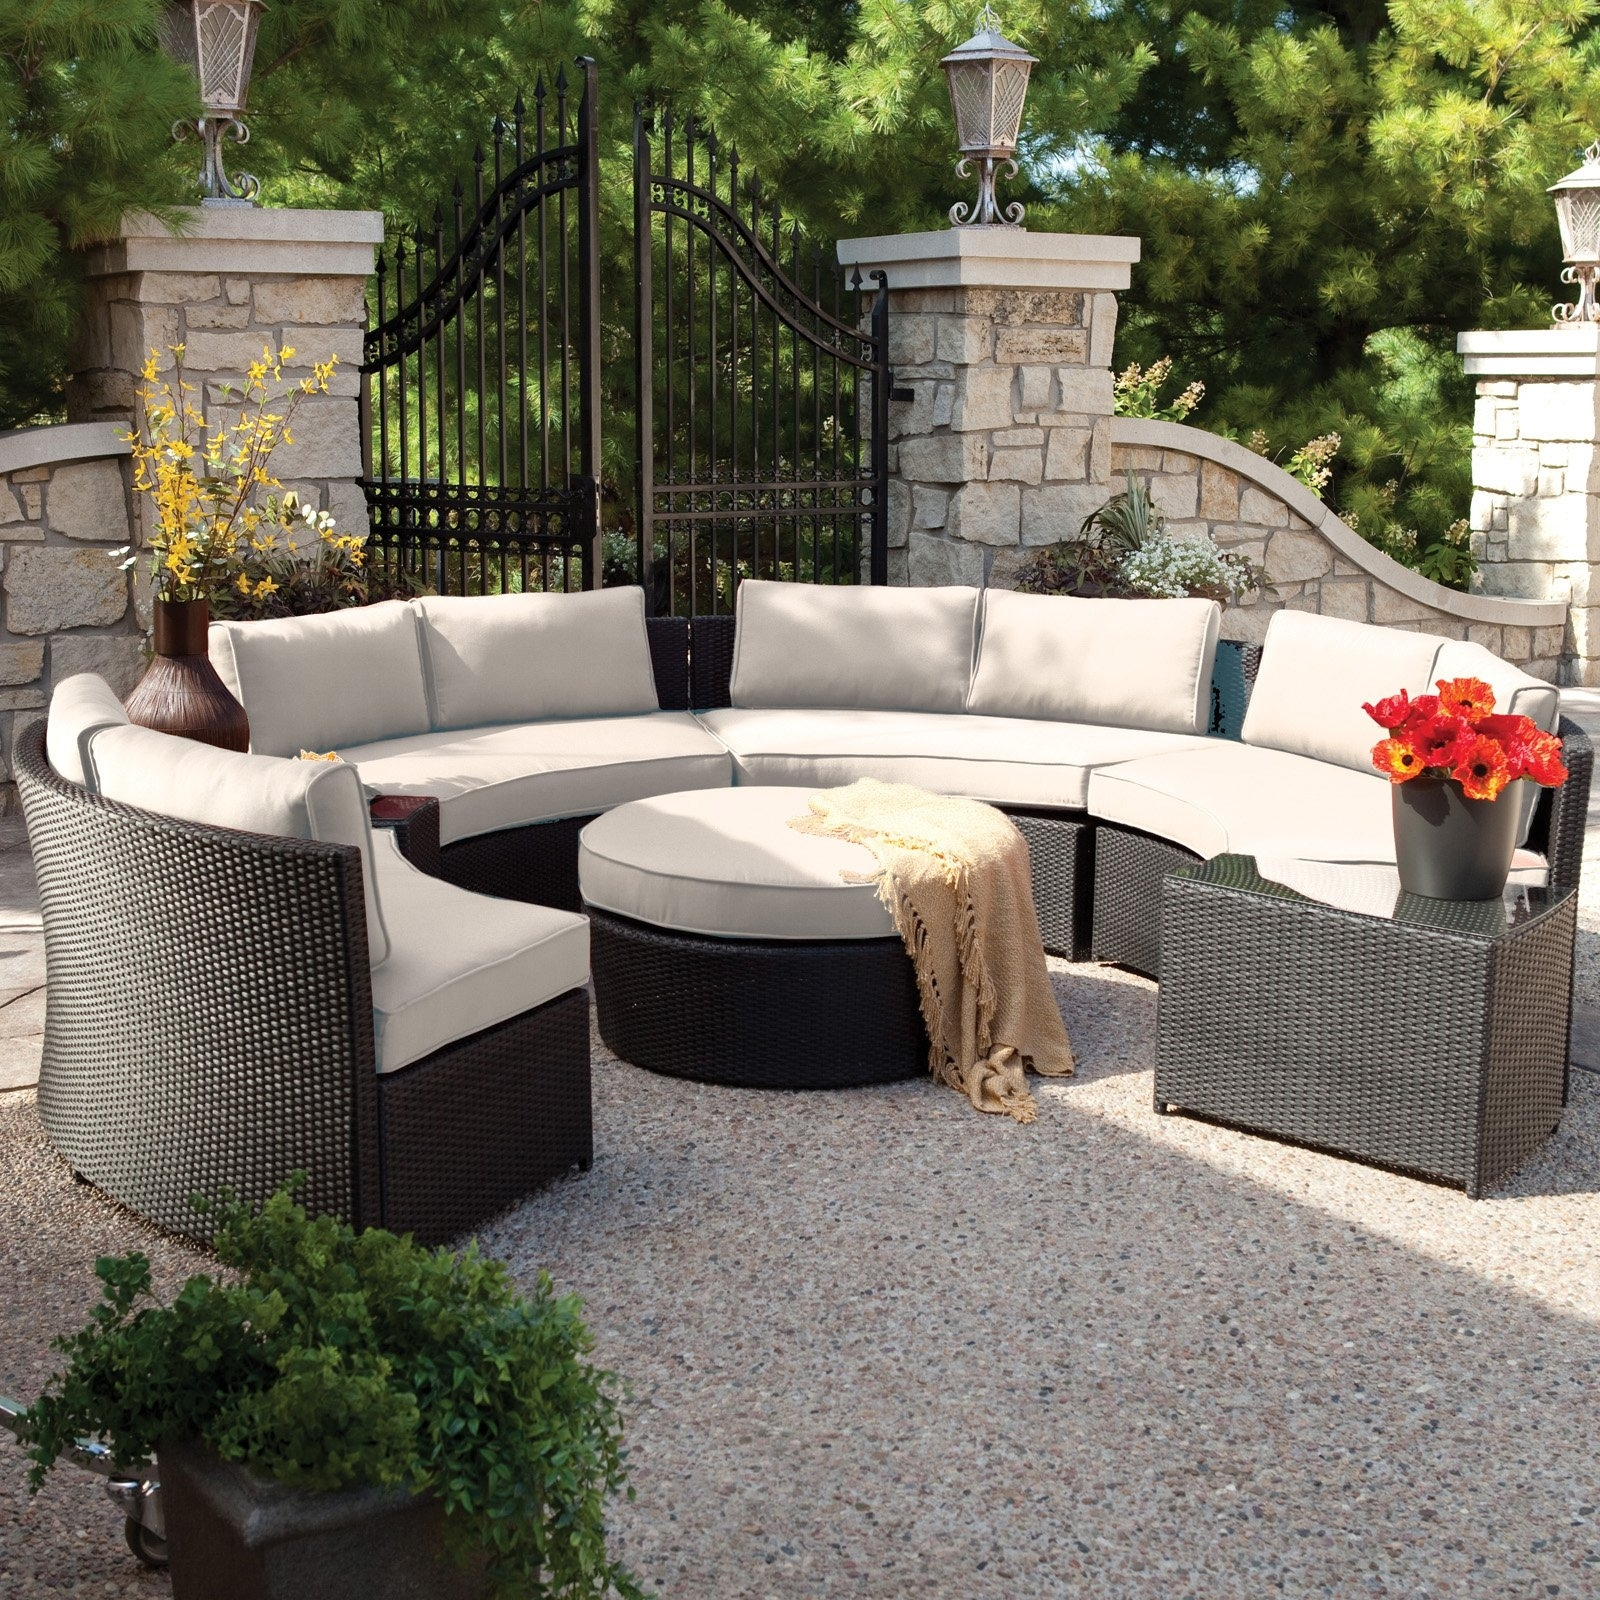 2018 Black Patio Conversation Sets Inside Belham Living Meridian Round Outdoor Wicker Patio Furniture Set With (View 1 of 20)